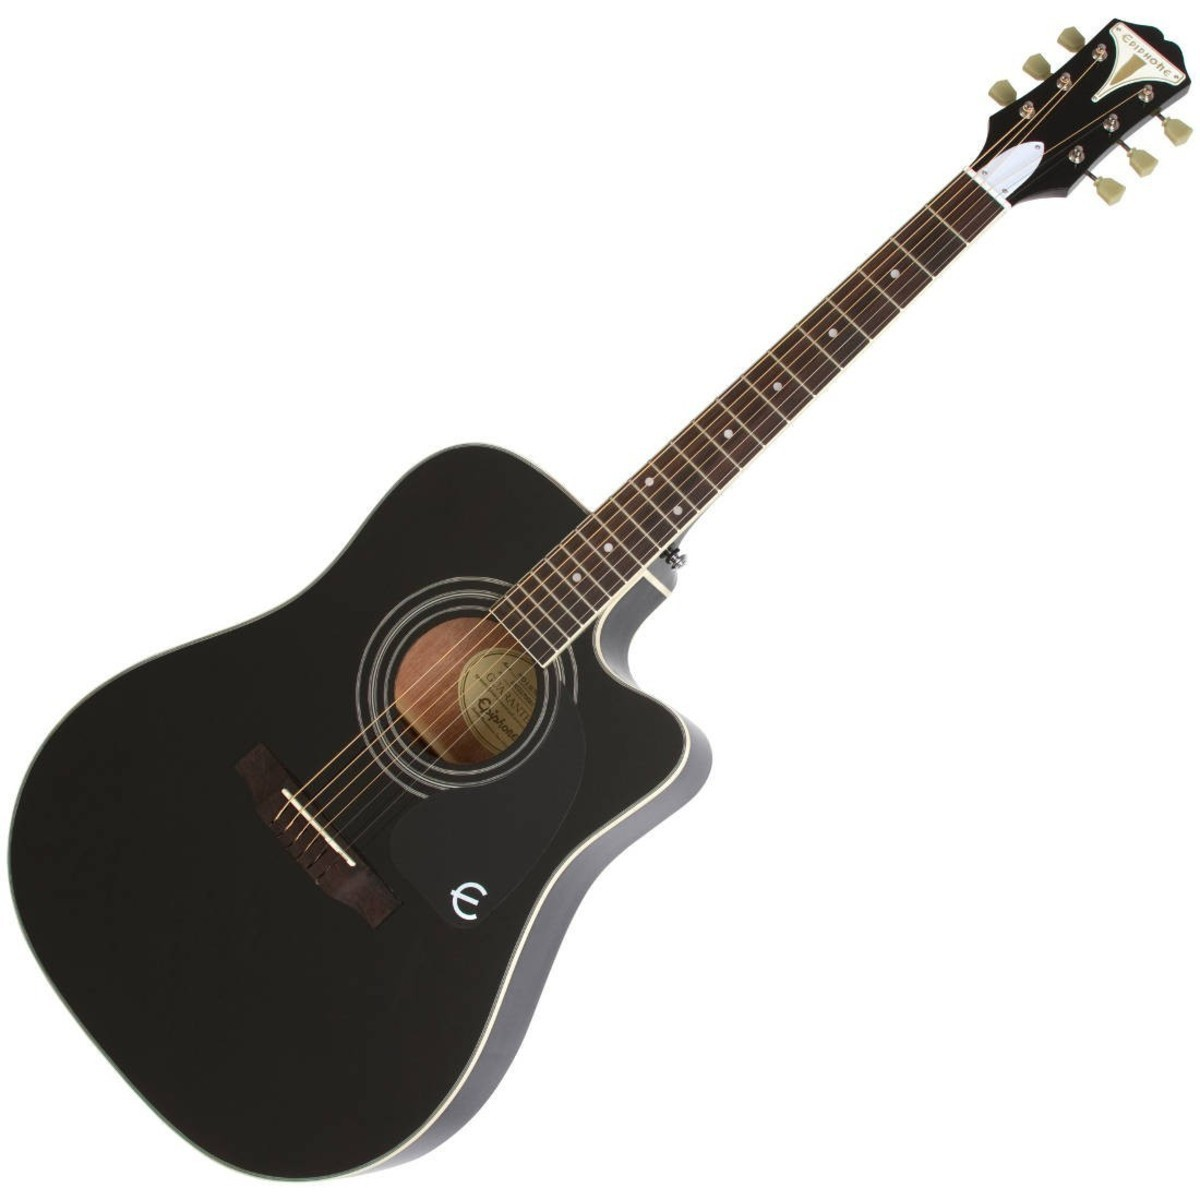 Epiphone Pro 1 Ultra Beginners Electro Acoustic Guitar